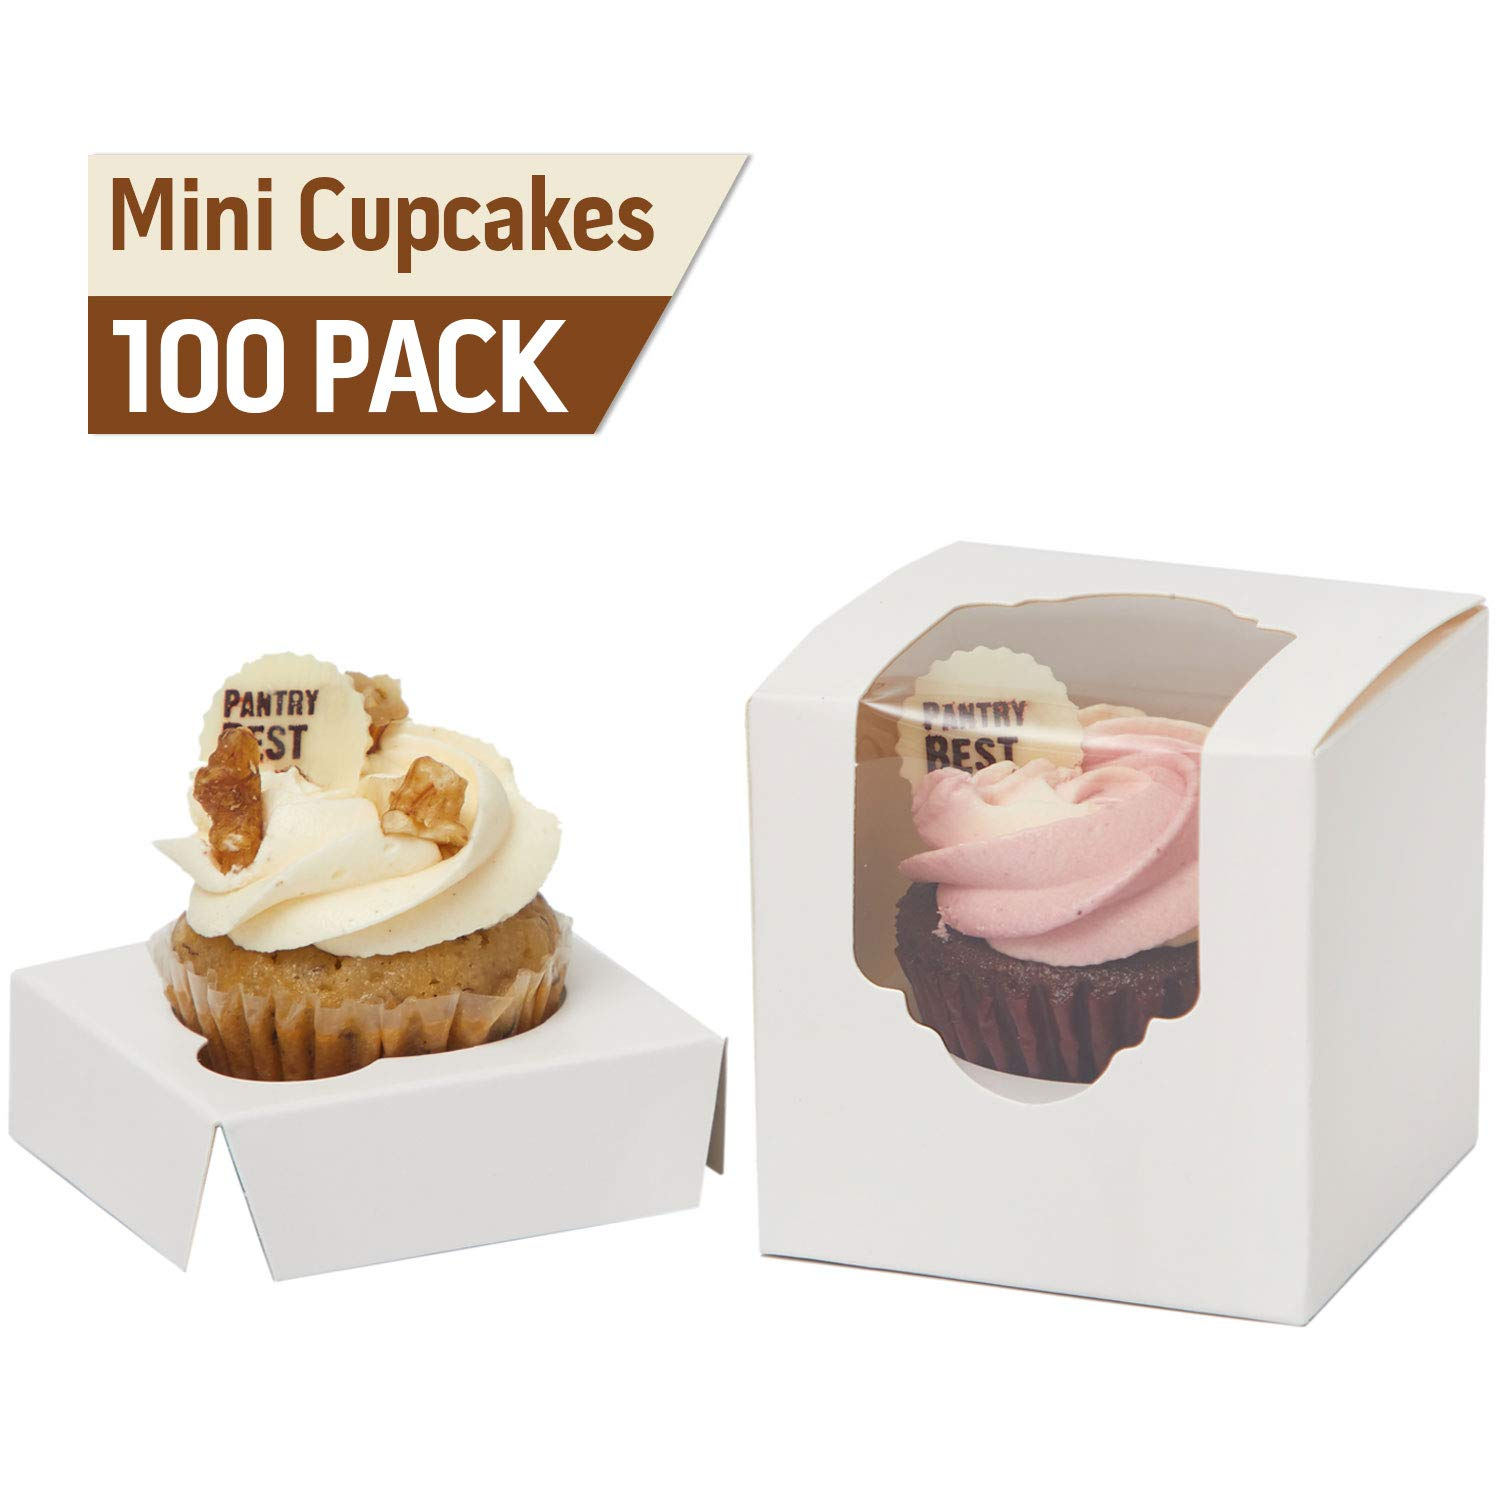 Yotruth Wedding Favor Boxes Mini Cupcake Boxes Single White Extra Sturdy with Insert 100 Pack by yotruth